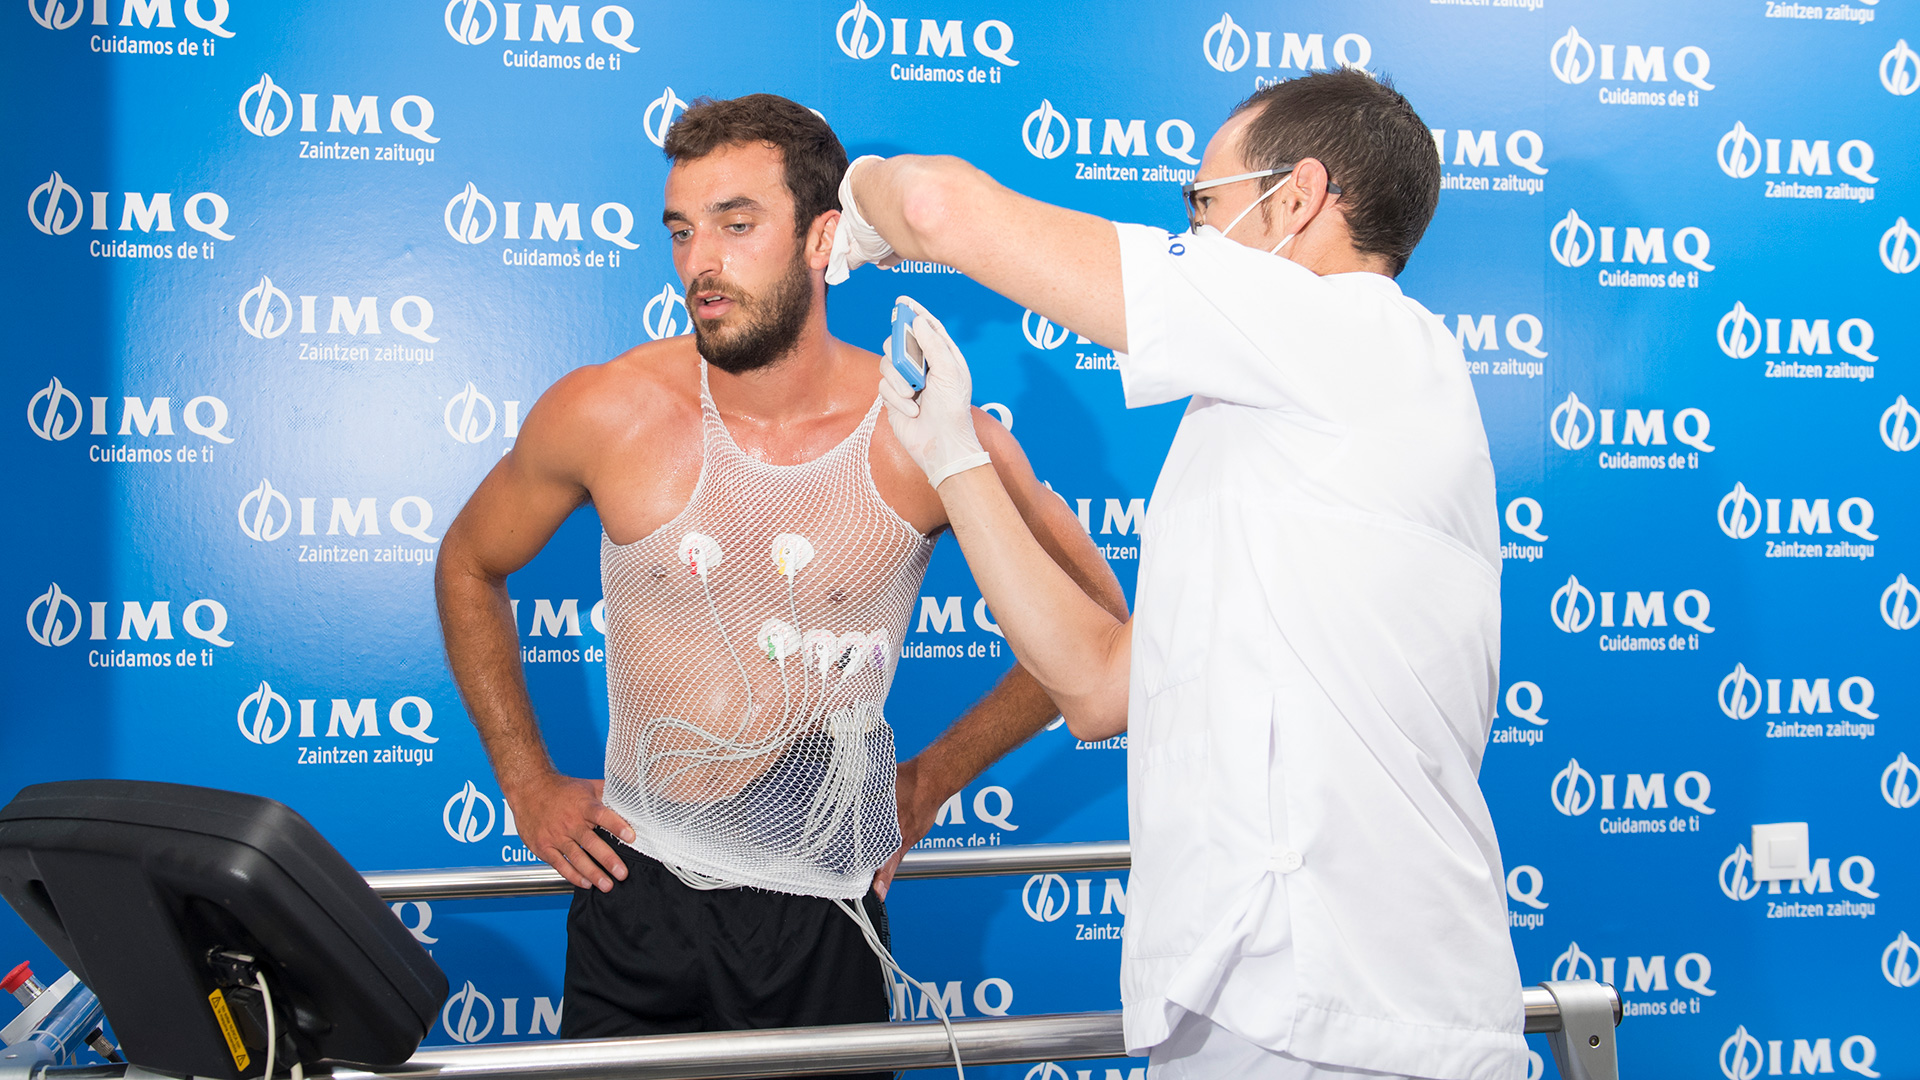 Athletic Club begin full medical evaluations with IMQ